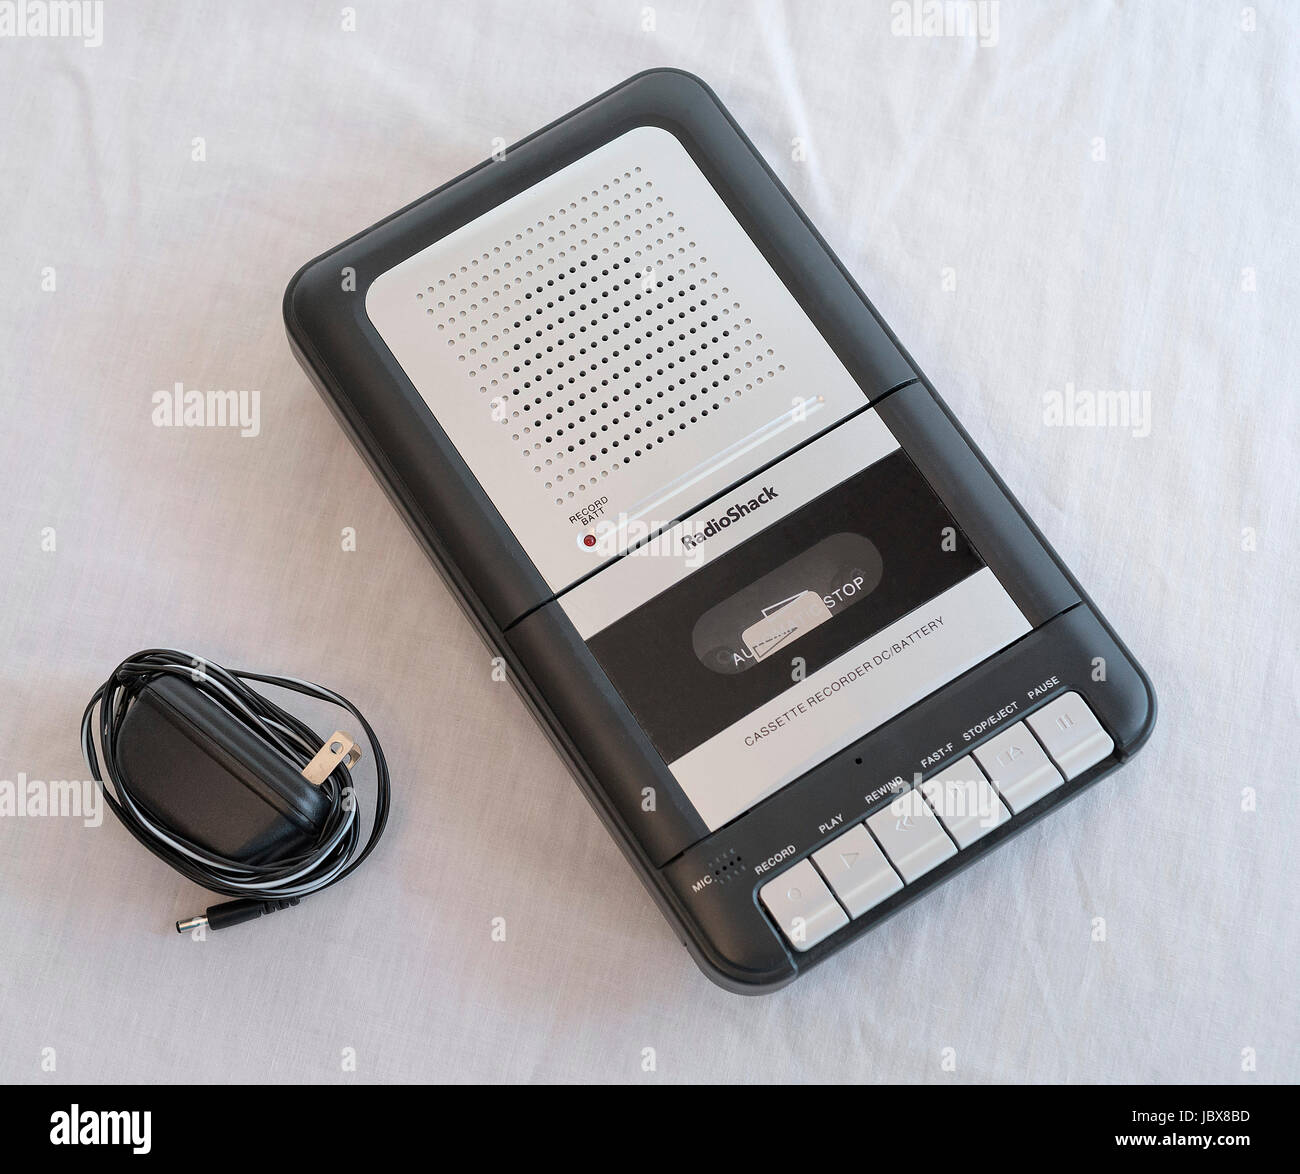 Radio Shack Cassette Recorder and player - Stock Image